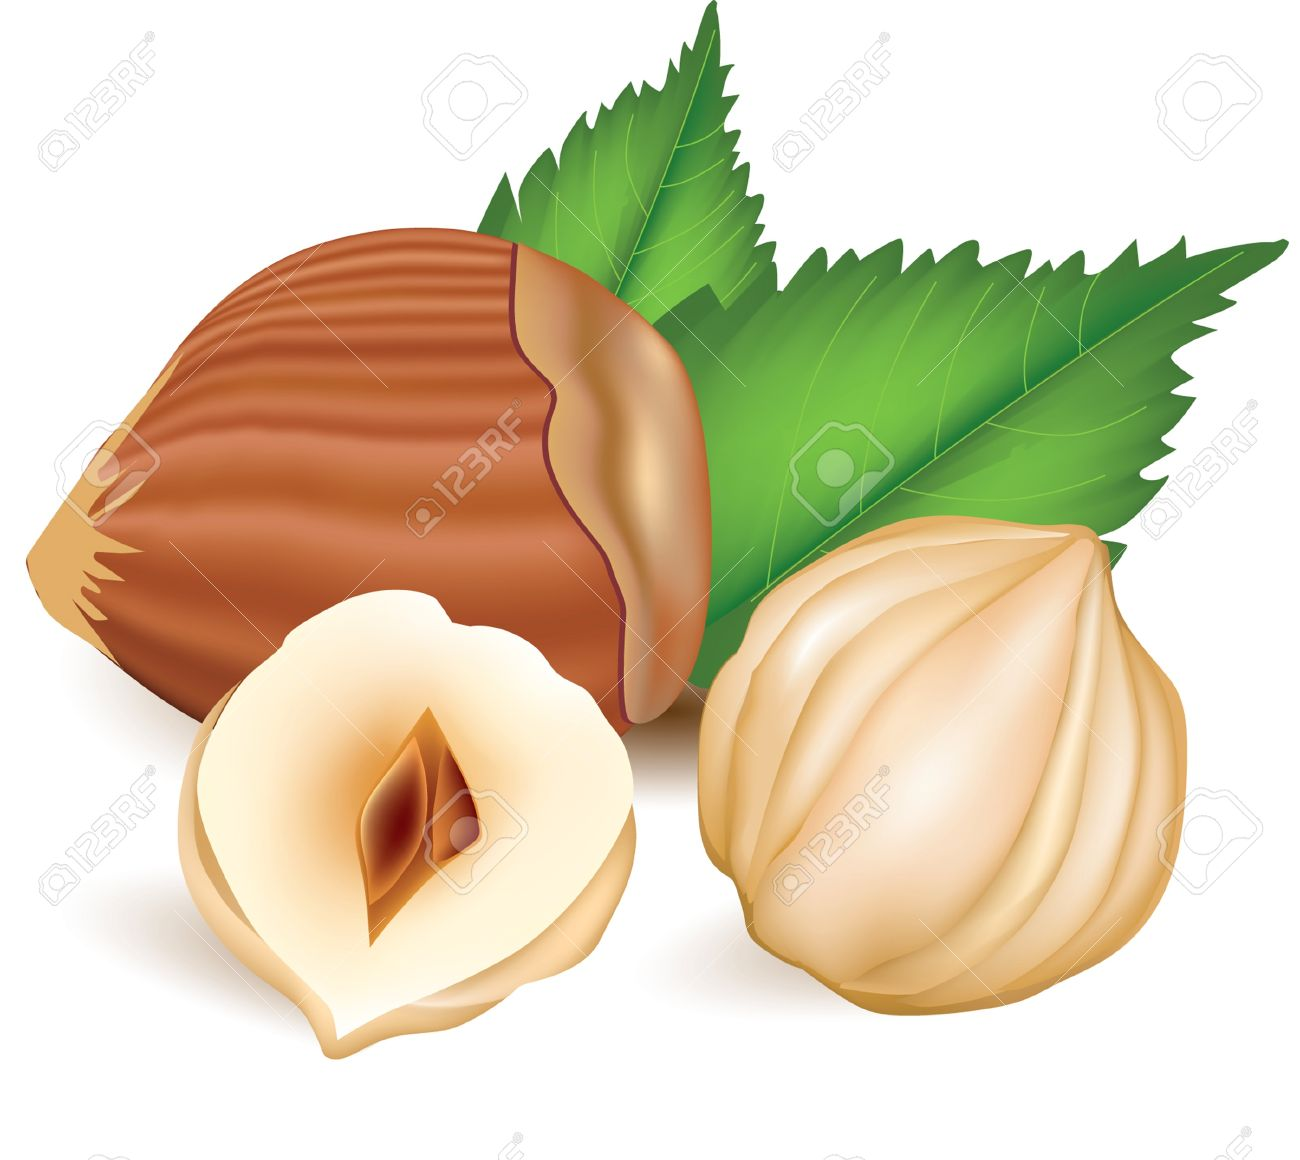 Hazelnuts With Leaves. Royalty Free Cliparts, Vectors, And Stock.